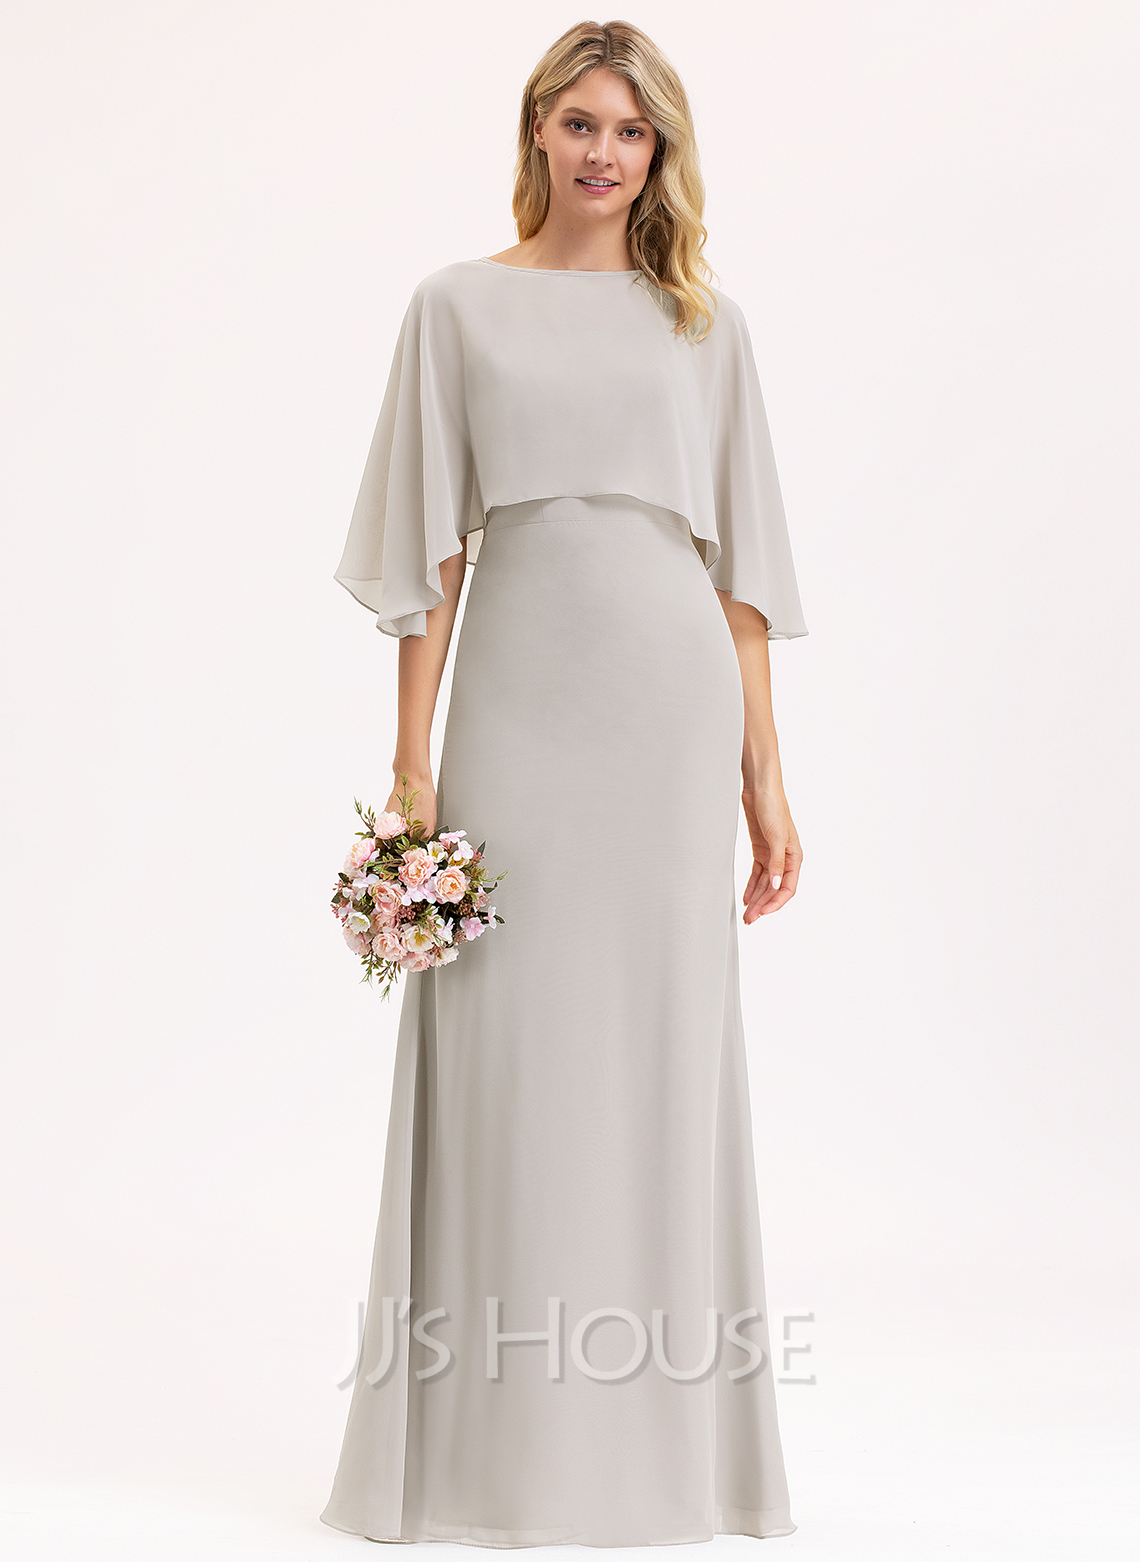 Sheath/Column Square Neckline Floor-Length Chiffon Bridesmaid Dress